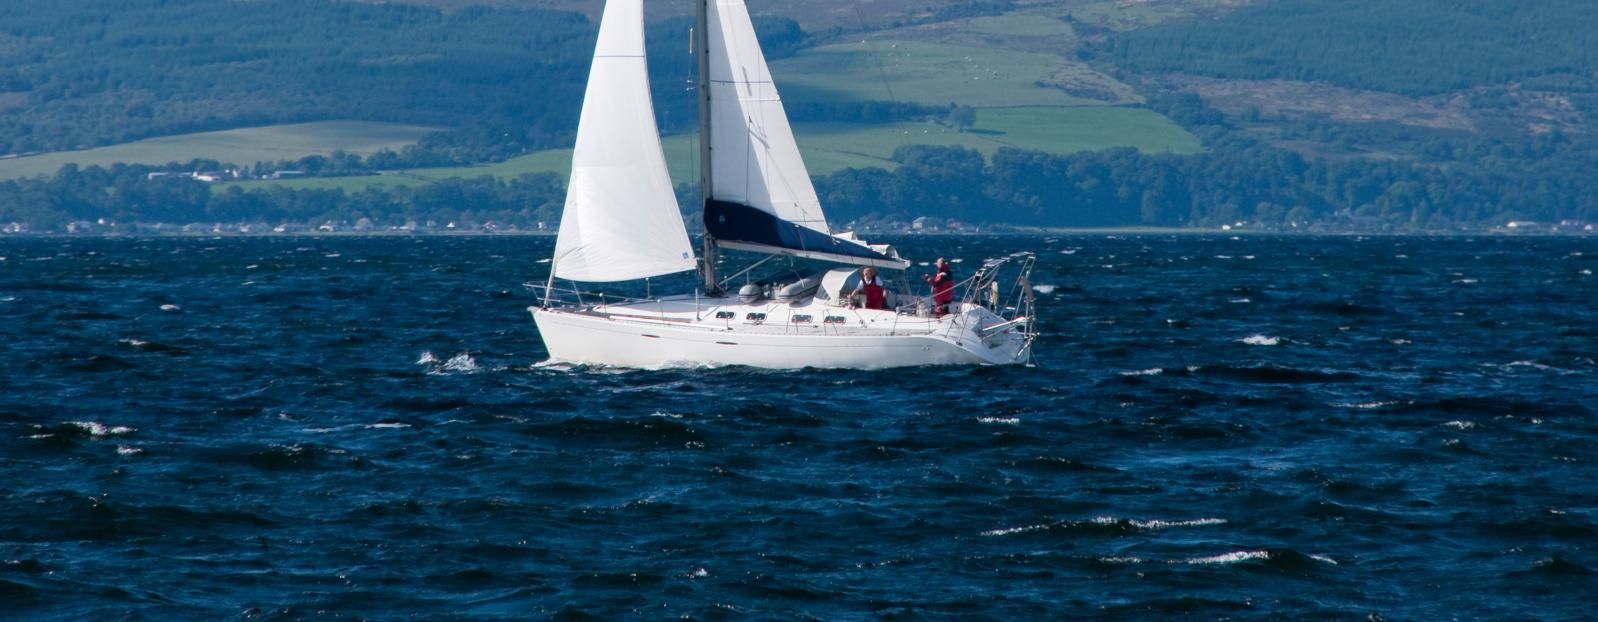 Top 5 Scottish Sailing Tips